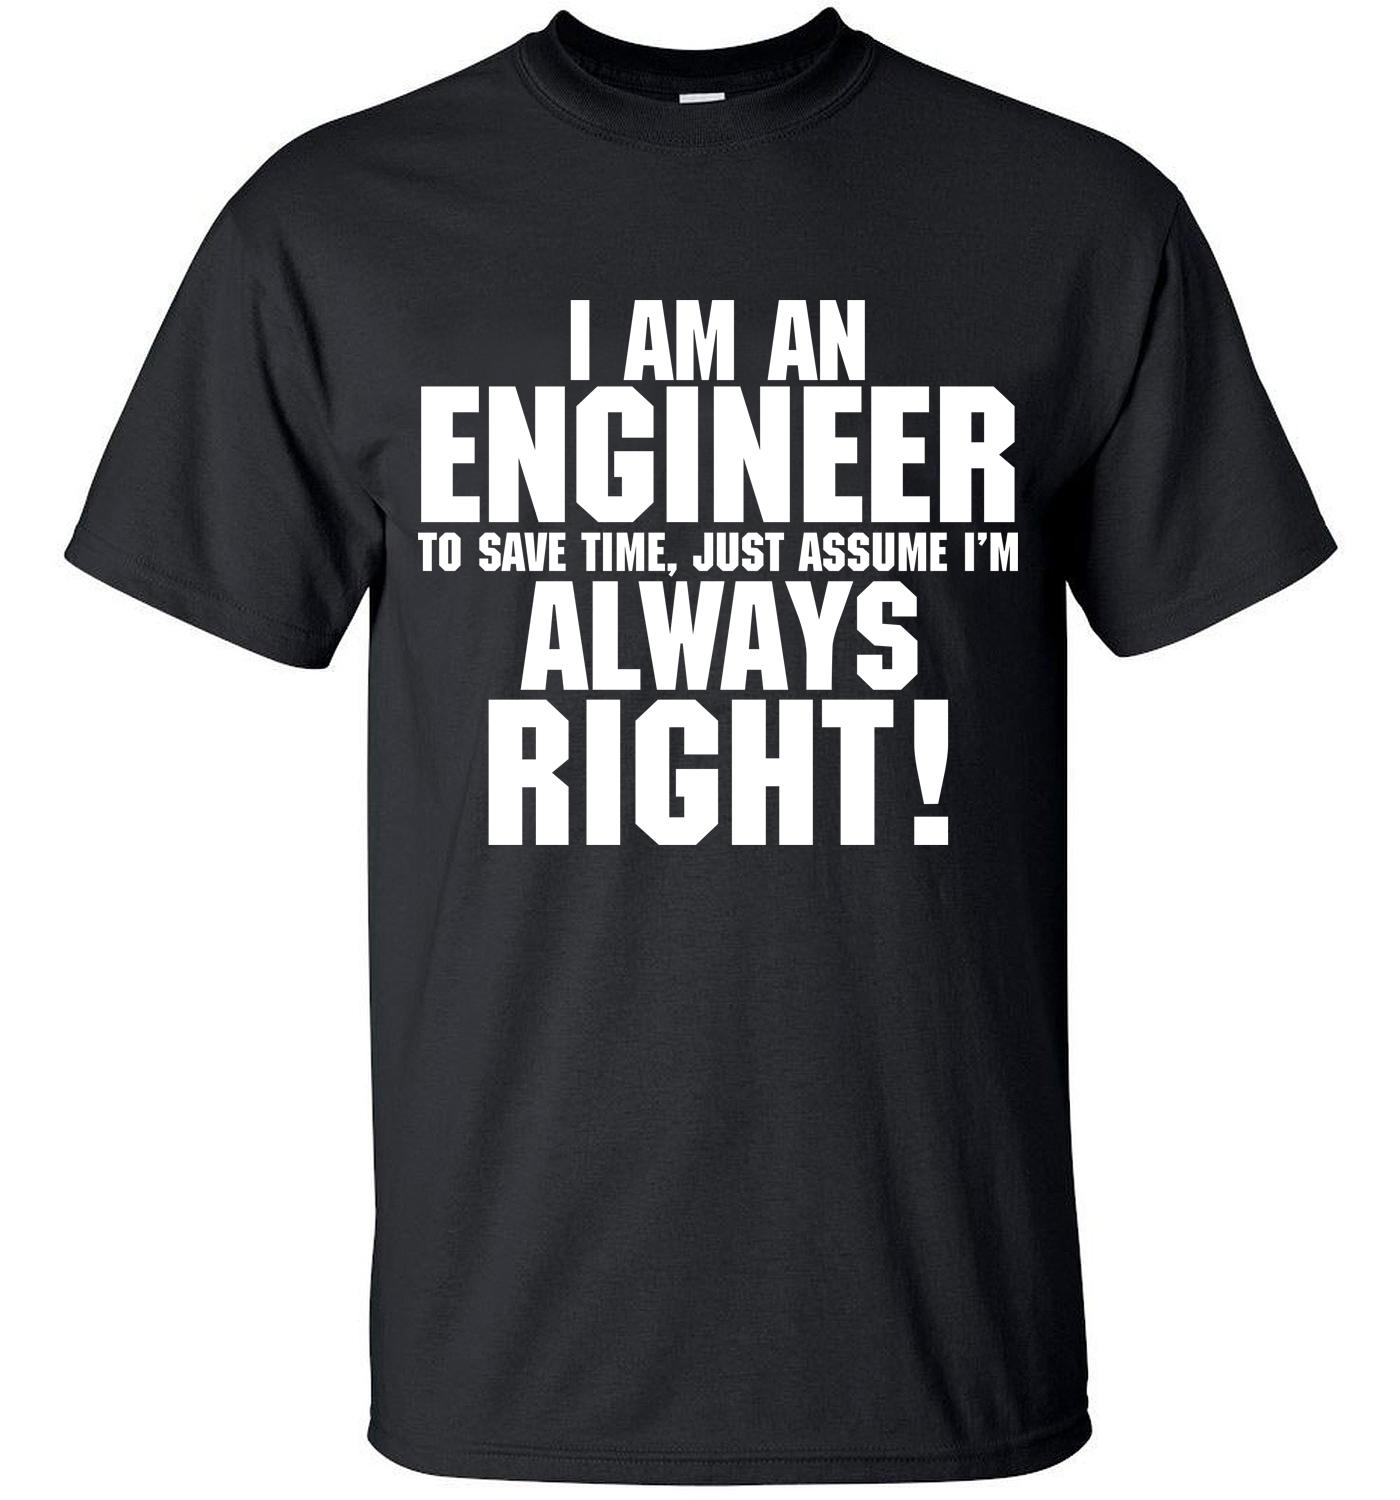 16767310d46 2019 Funny Trust Me I Am An Engineer Fashion Streetwear T Shirt Mens T  Shirts Tops Tees Top Brand Slim Clothing Pp Crossfit Long Sleeve Shirt T  Shirts ...